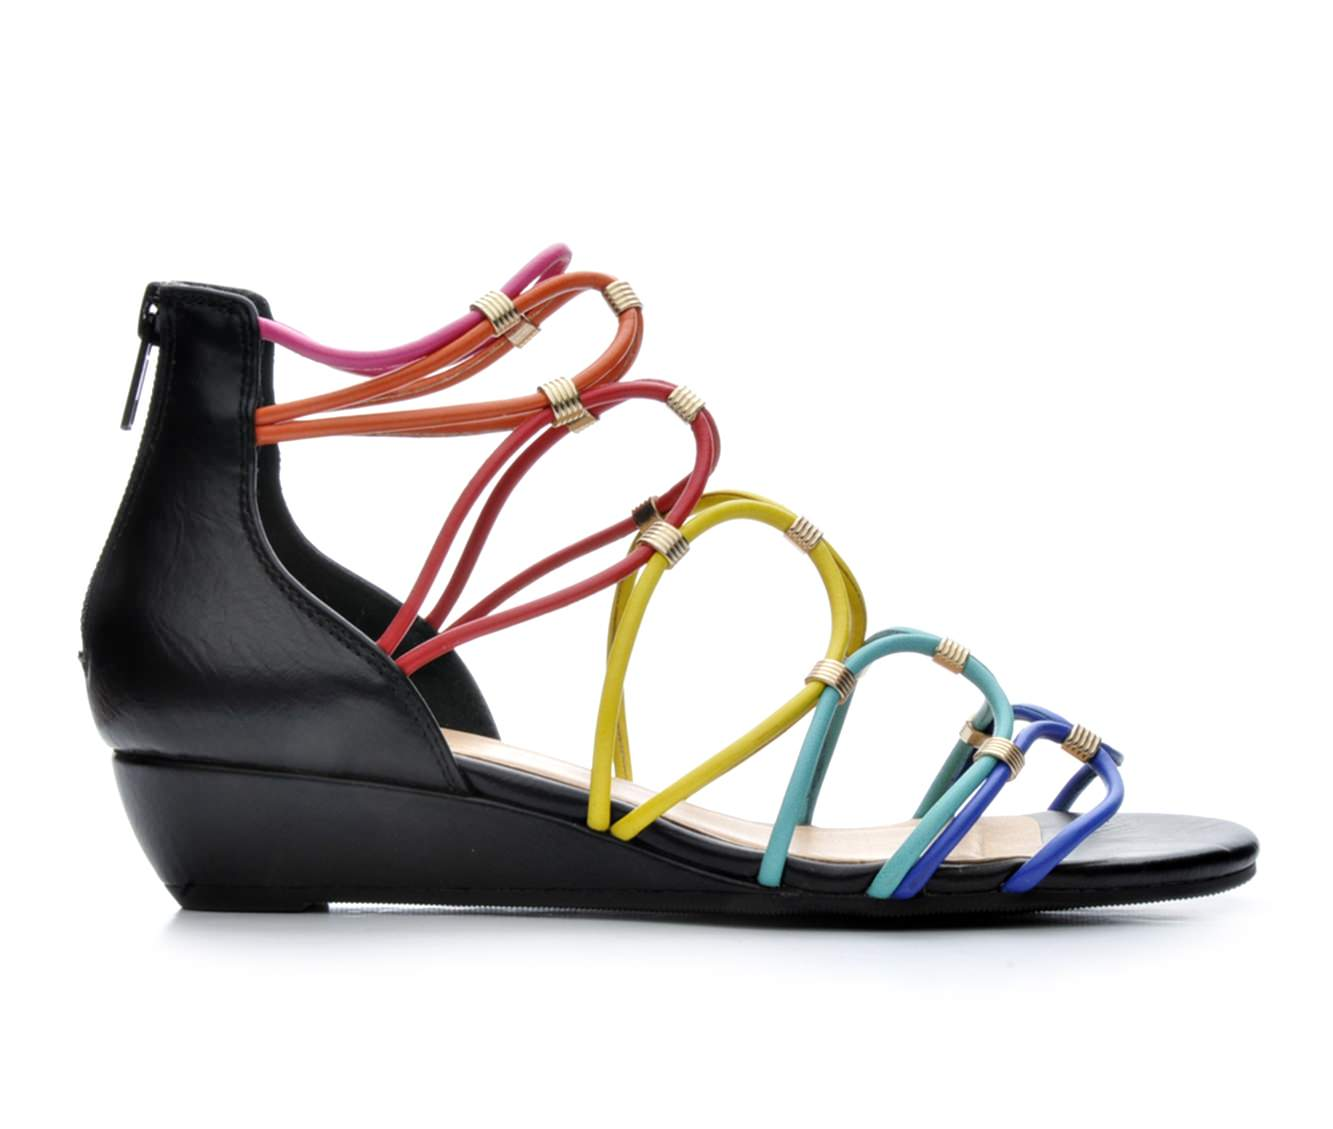 Women's Paprika Porsha Wedge Sandals (Multicolor)